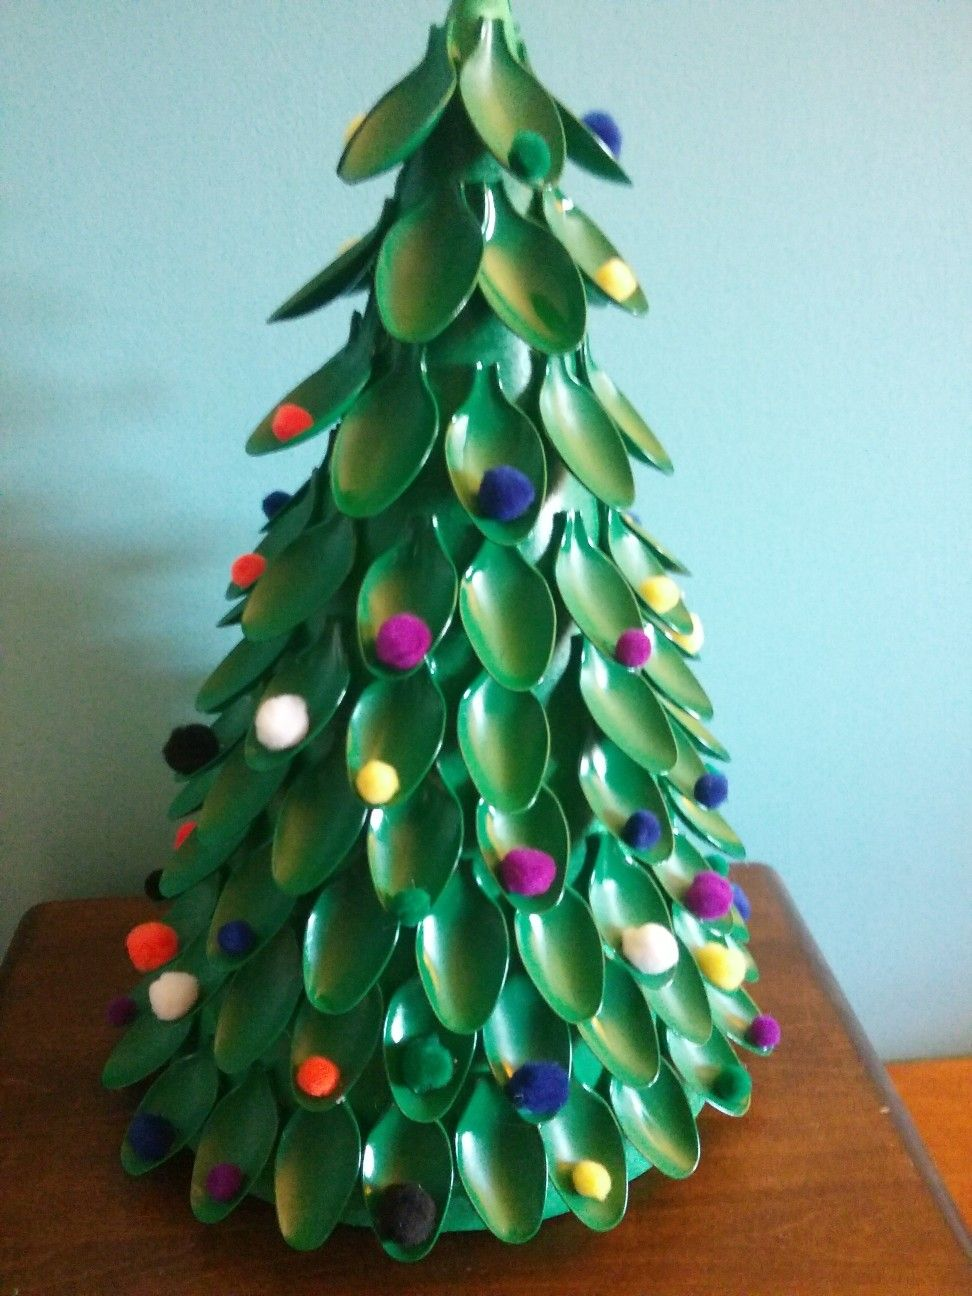 This Is My Diy Christmas Tree With Spoons Supplies Needed Plastic Disposable Spoons Spray Paint Color Of Ch Christmas Diy Christmas Tree Crafts Spoon Crafts